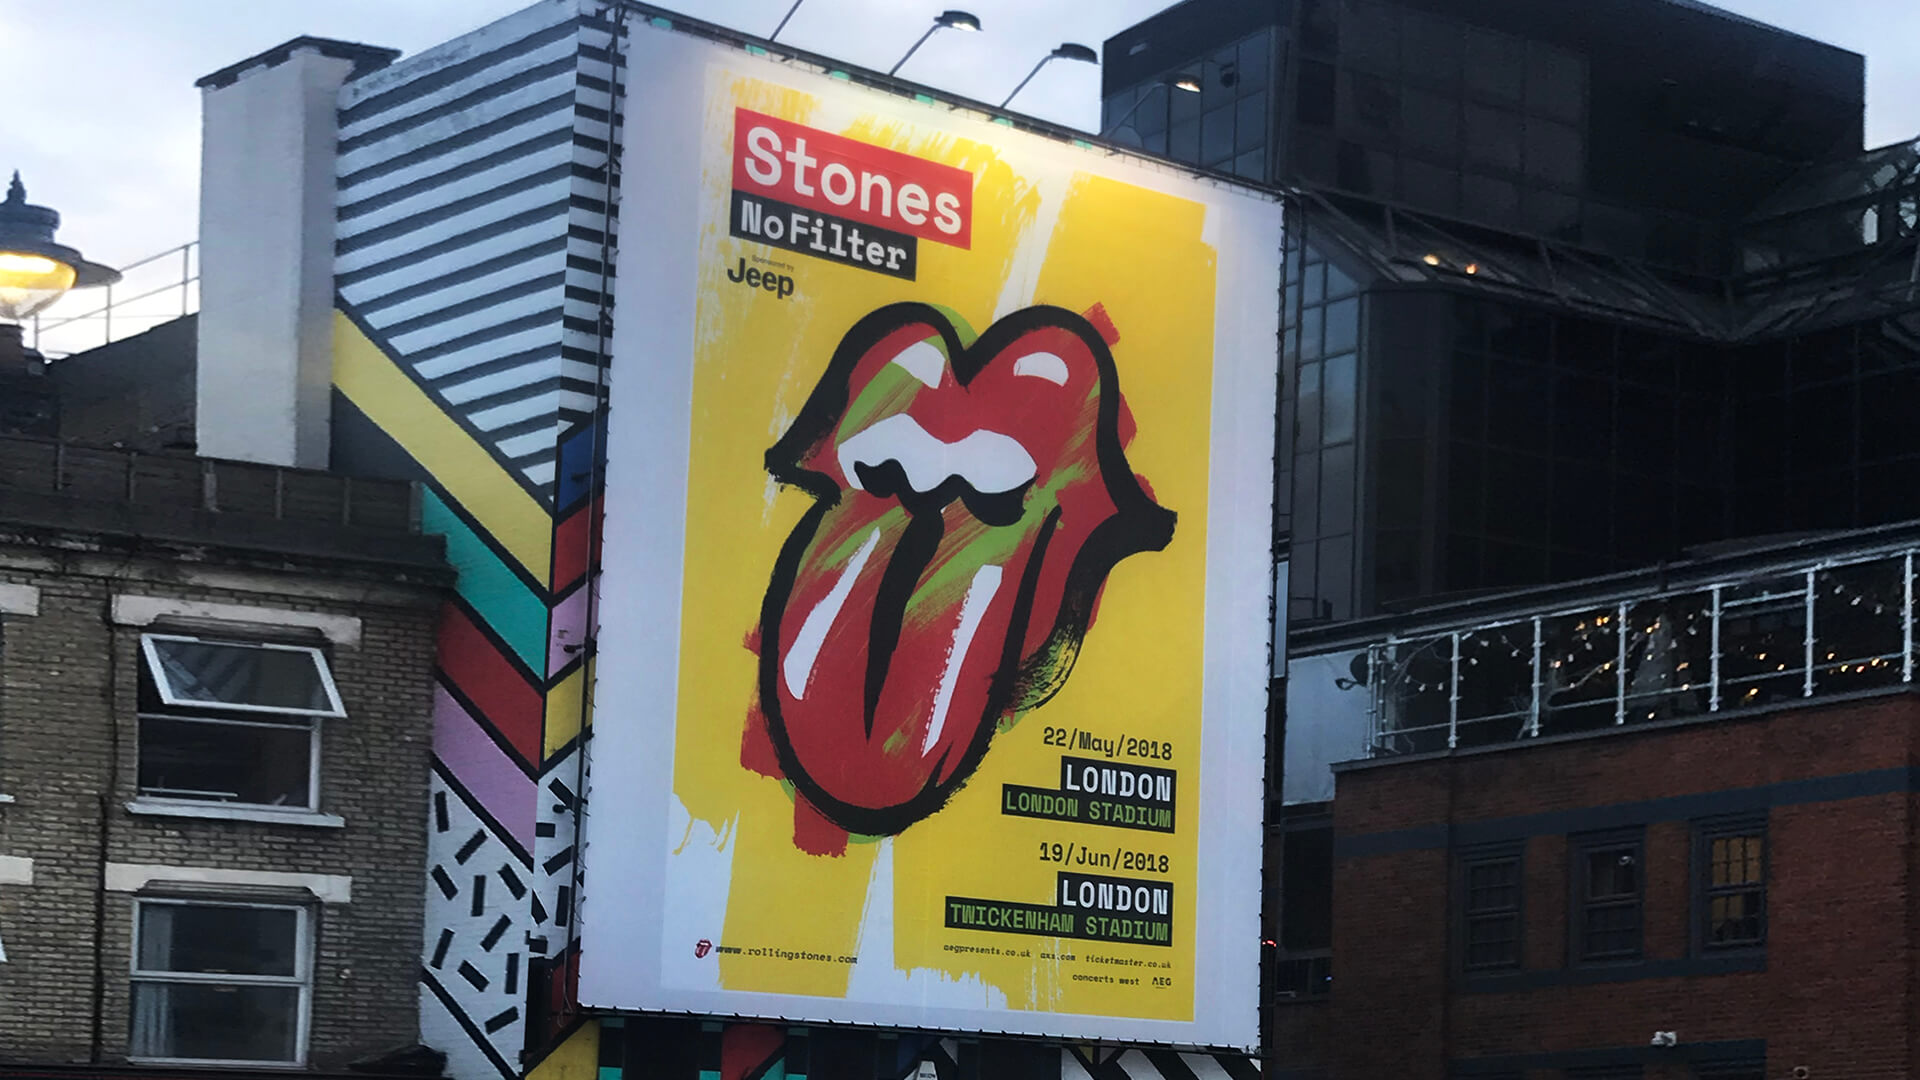 The Rolling Stones Brand Identities And Marketing Campaigns